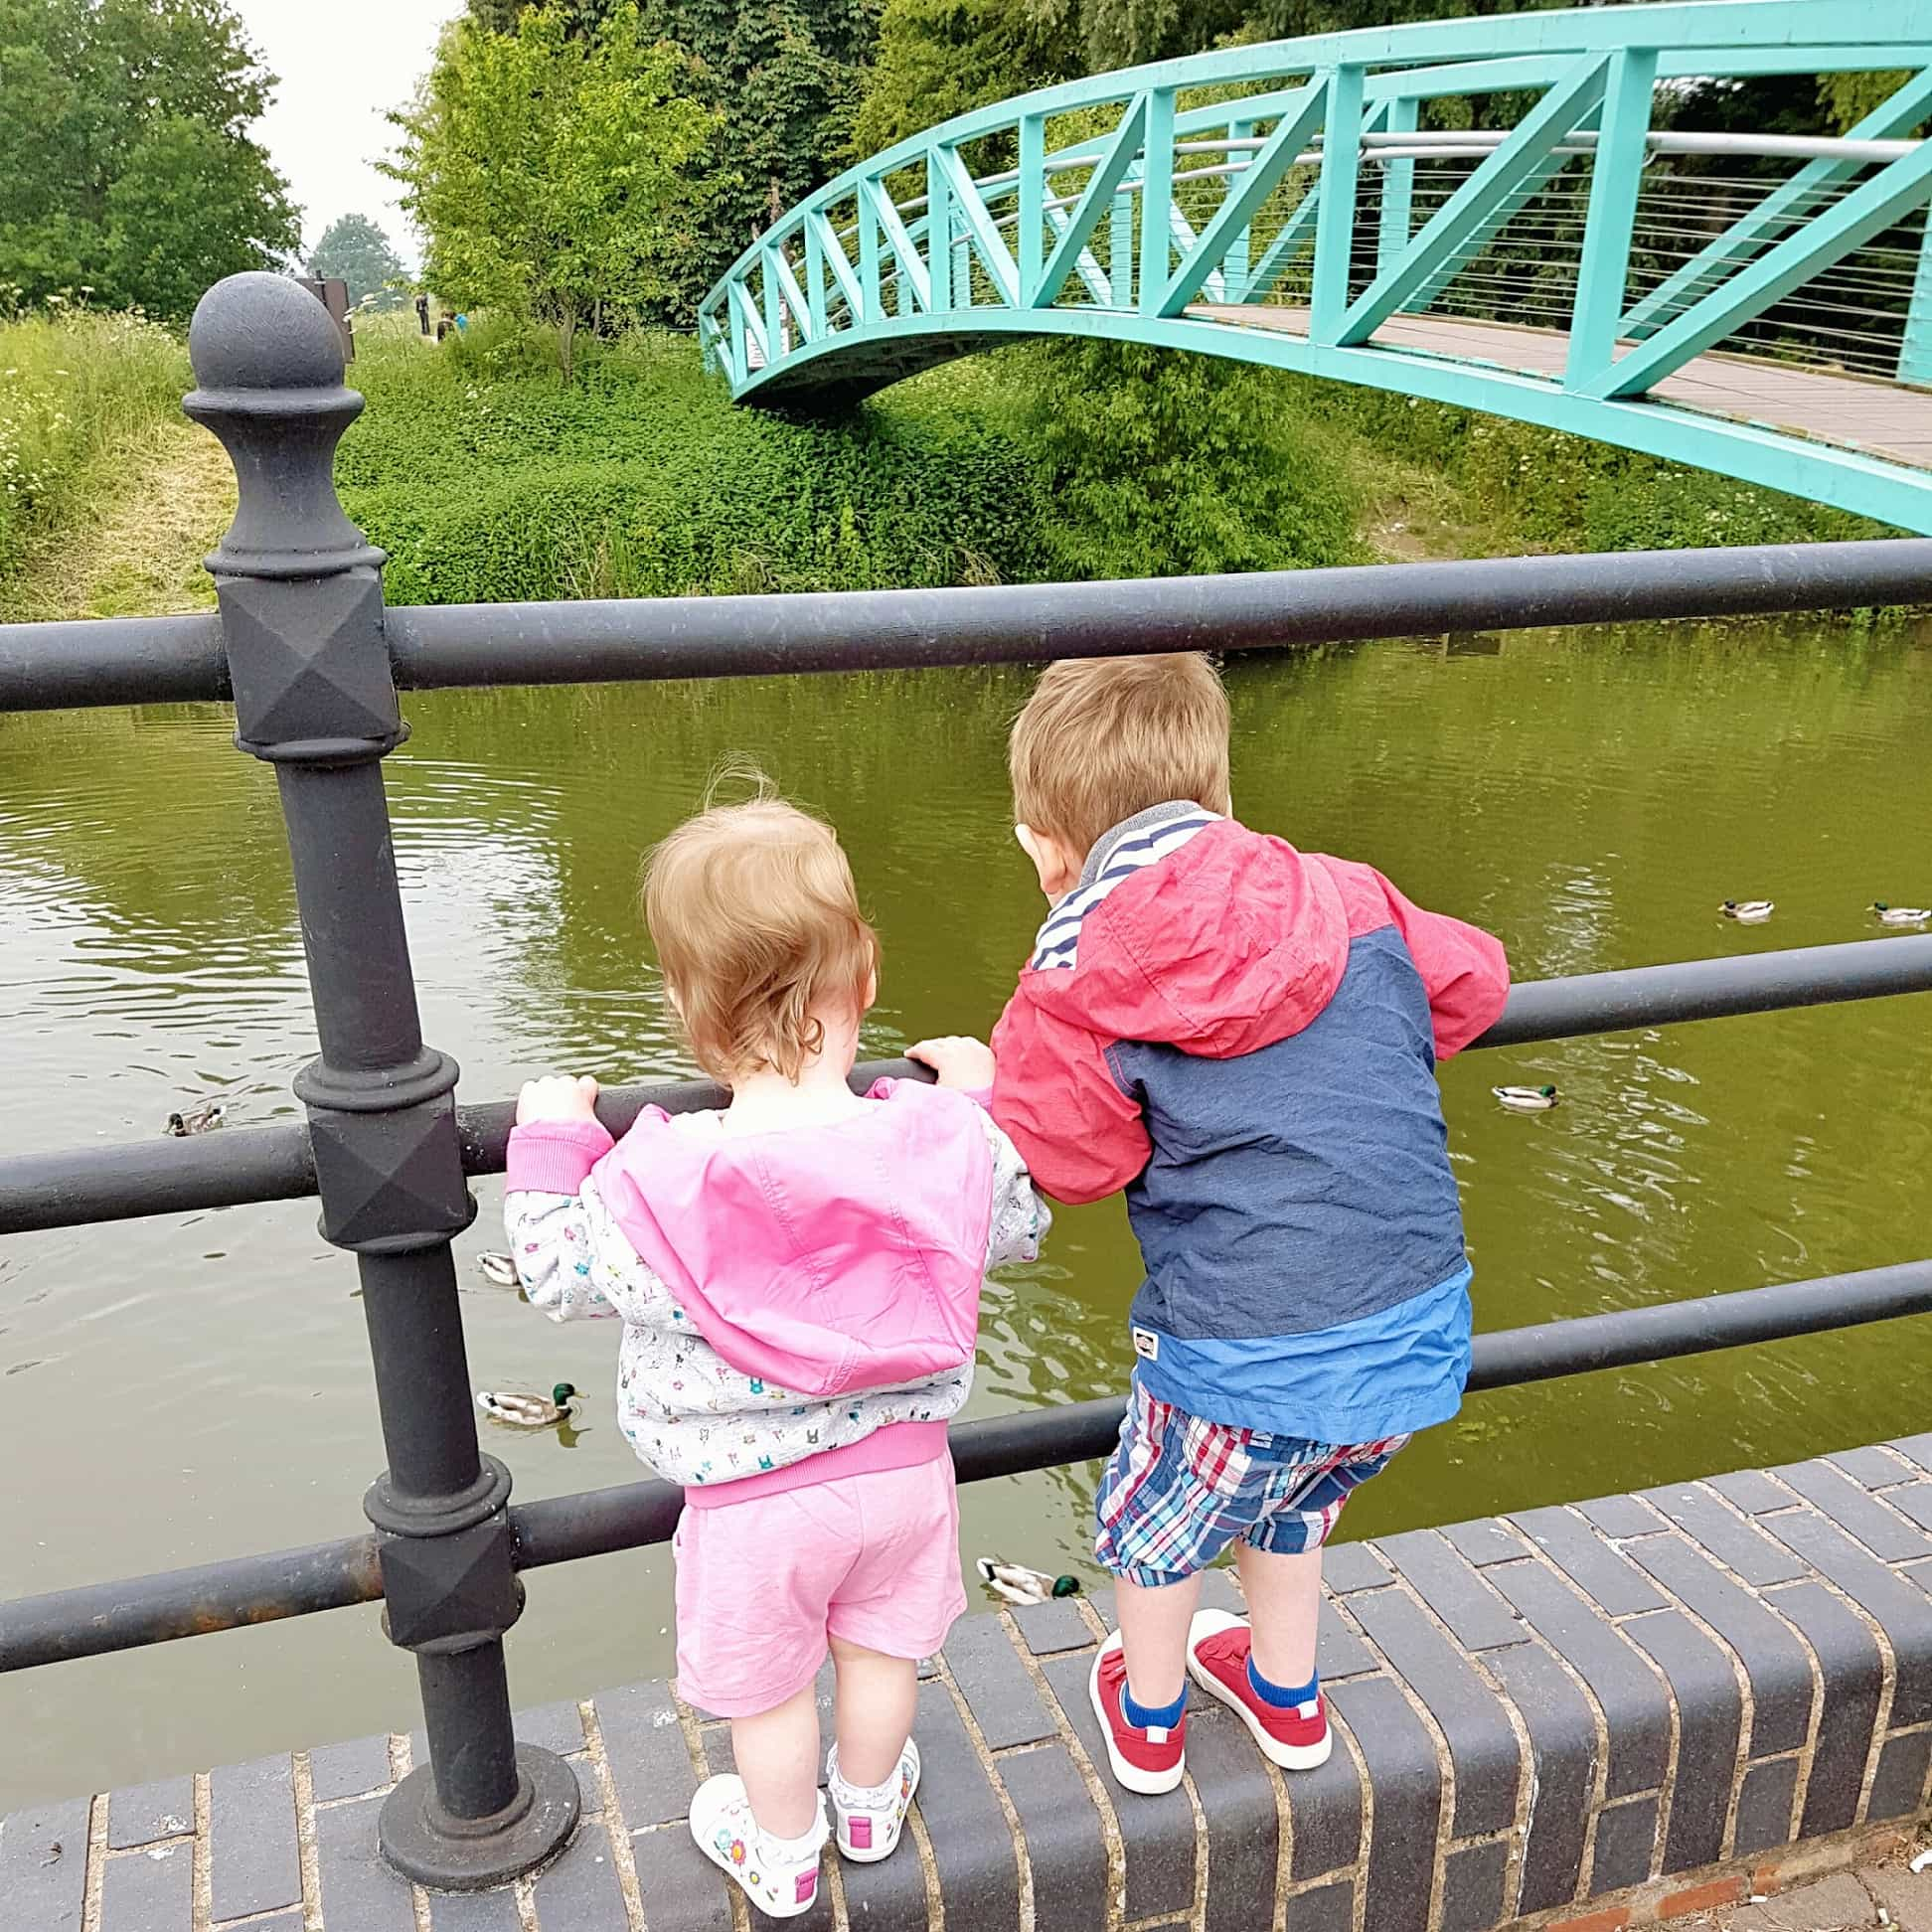 Small girl and boy leaning over barrier to see ducks on river